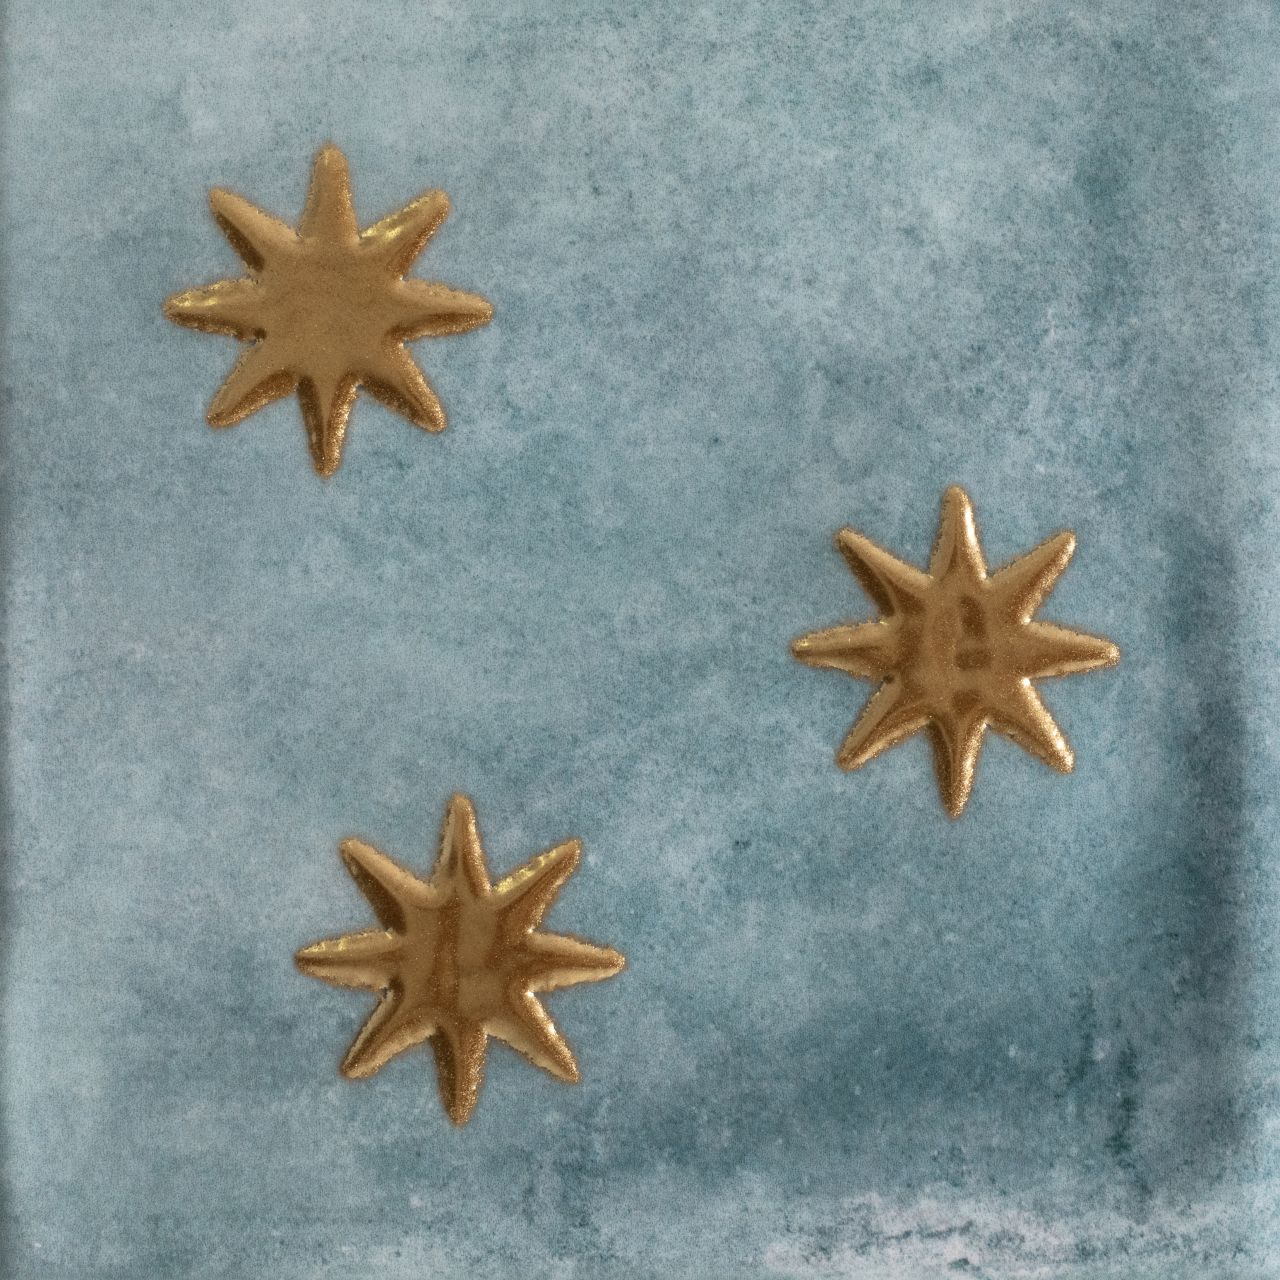 Revestimento Patch Celeste Blue - Decoralites 1 (ESTE VALOR SE REFERE AO M²) PRIMUS DECOR